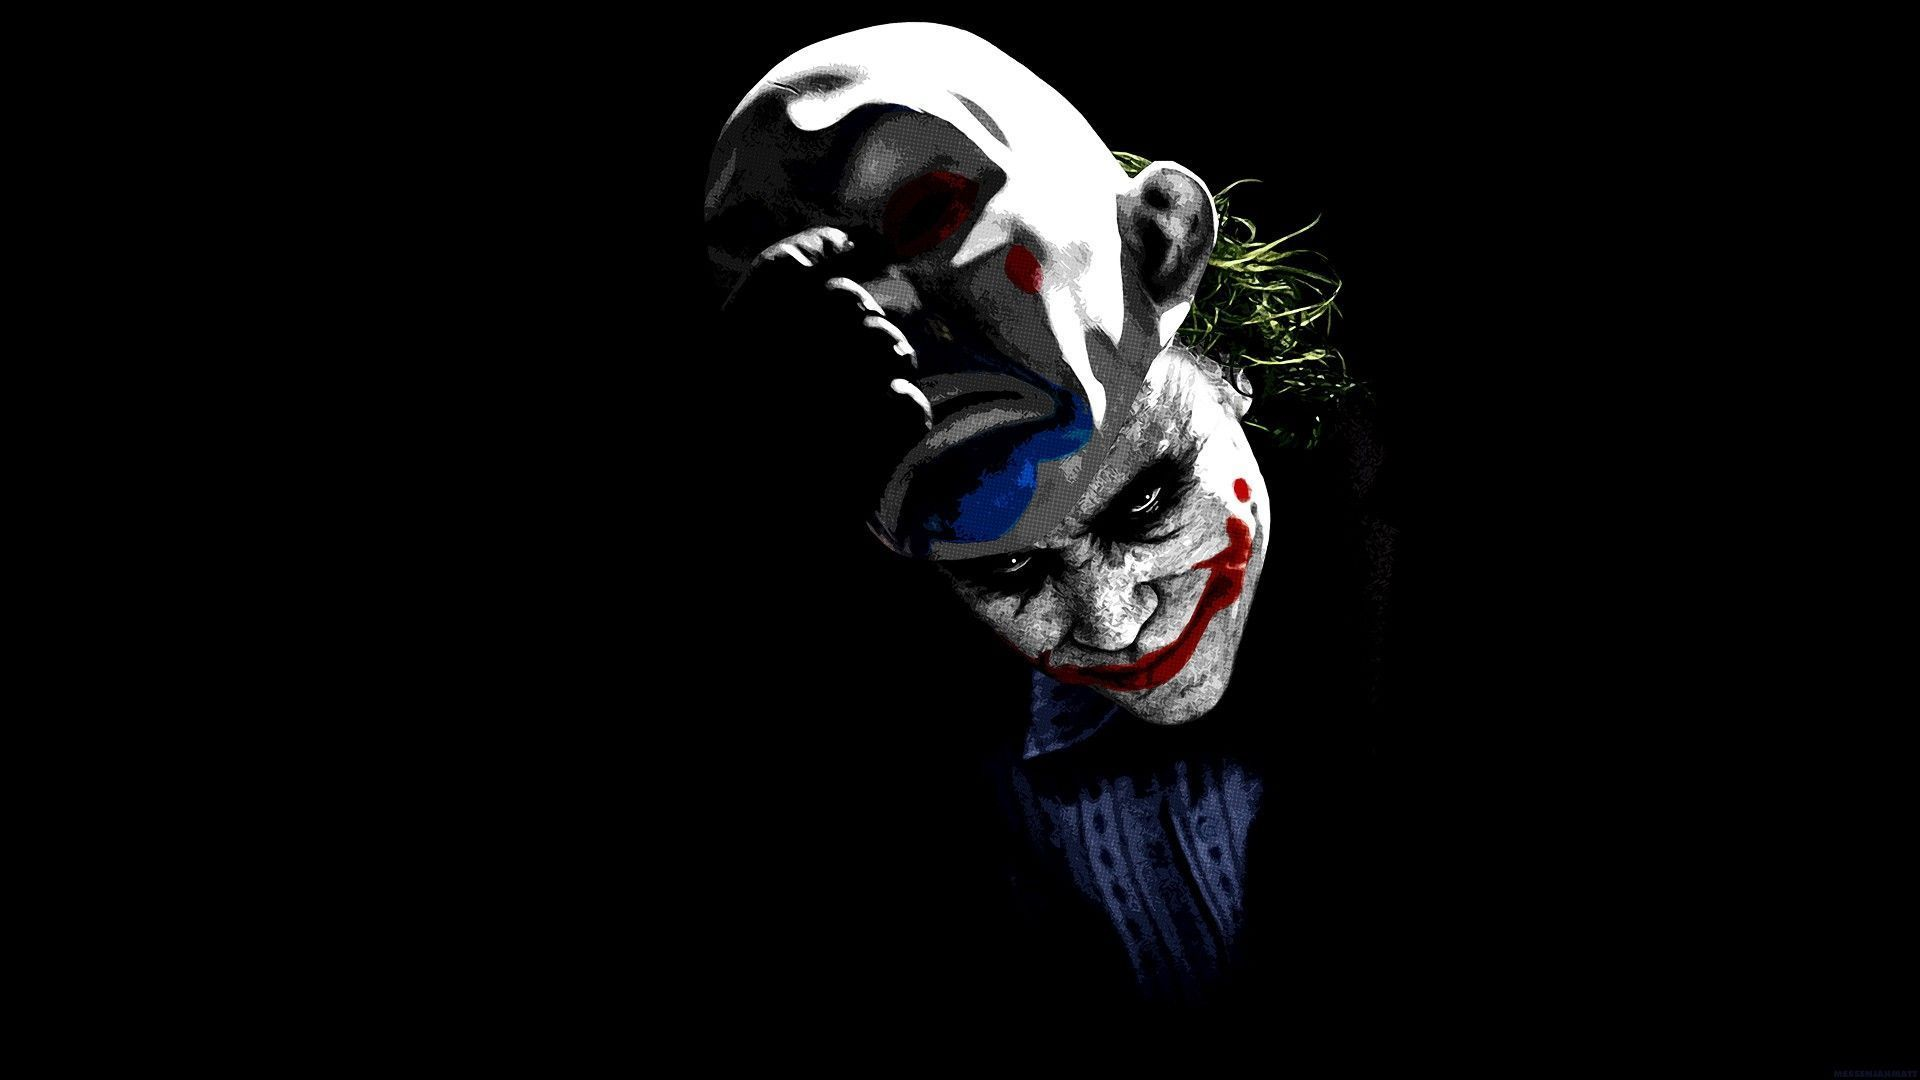 Joker Hd Wallpapers Backgrounds Wallpaper 1920 1080 Wallpaper Joker 41 Wallpapers Adorable Wa Pc Desktop Wallpaper Joker Wallpapers Hd Wallpapers For Pc